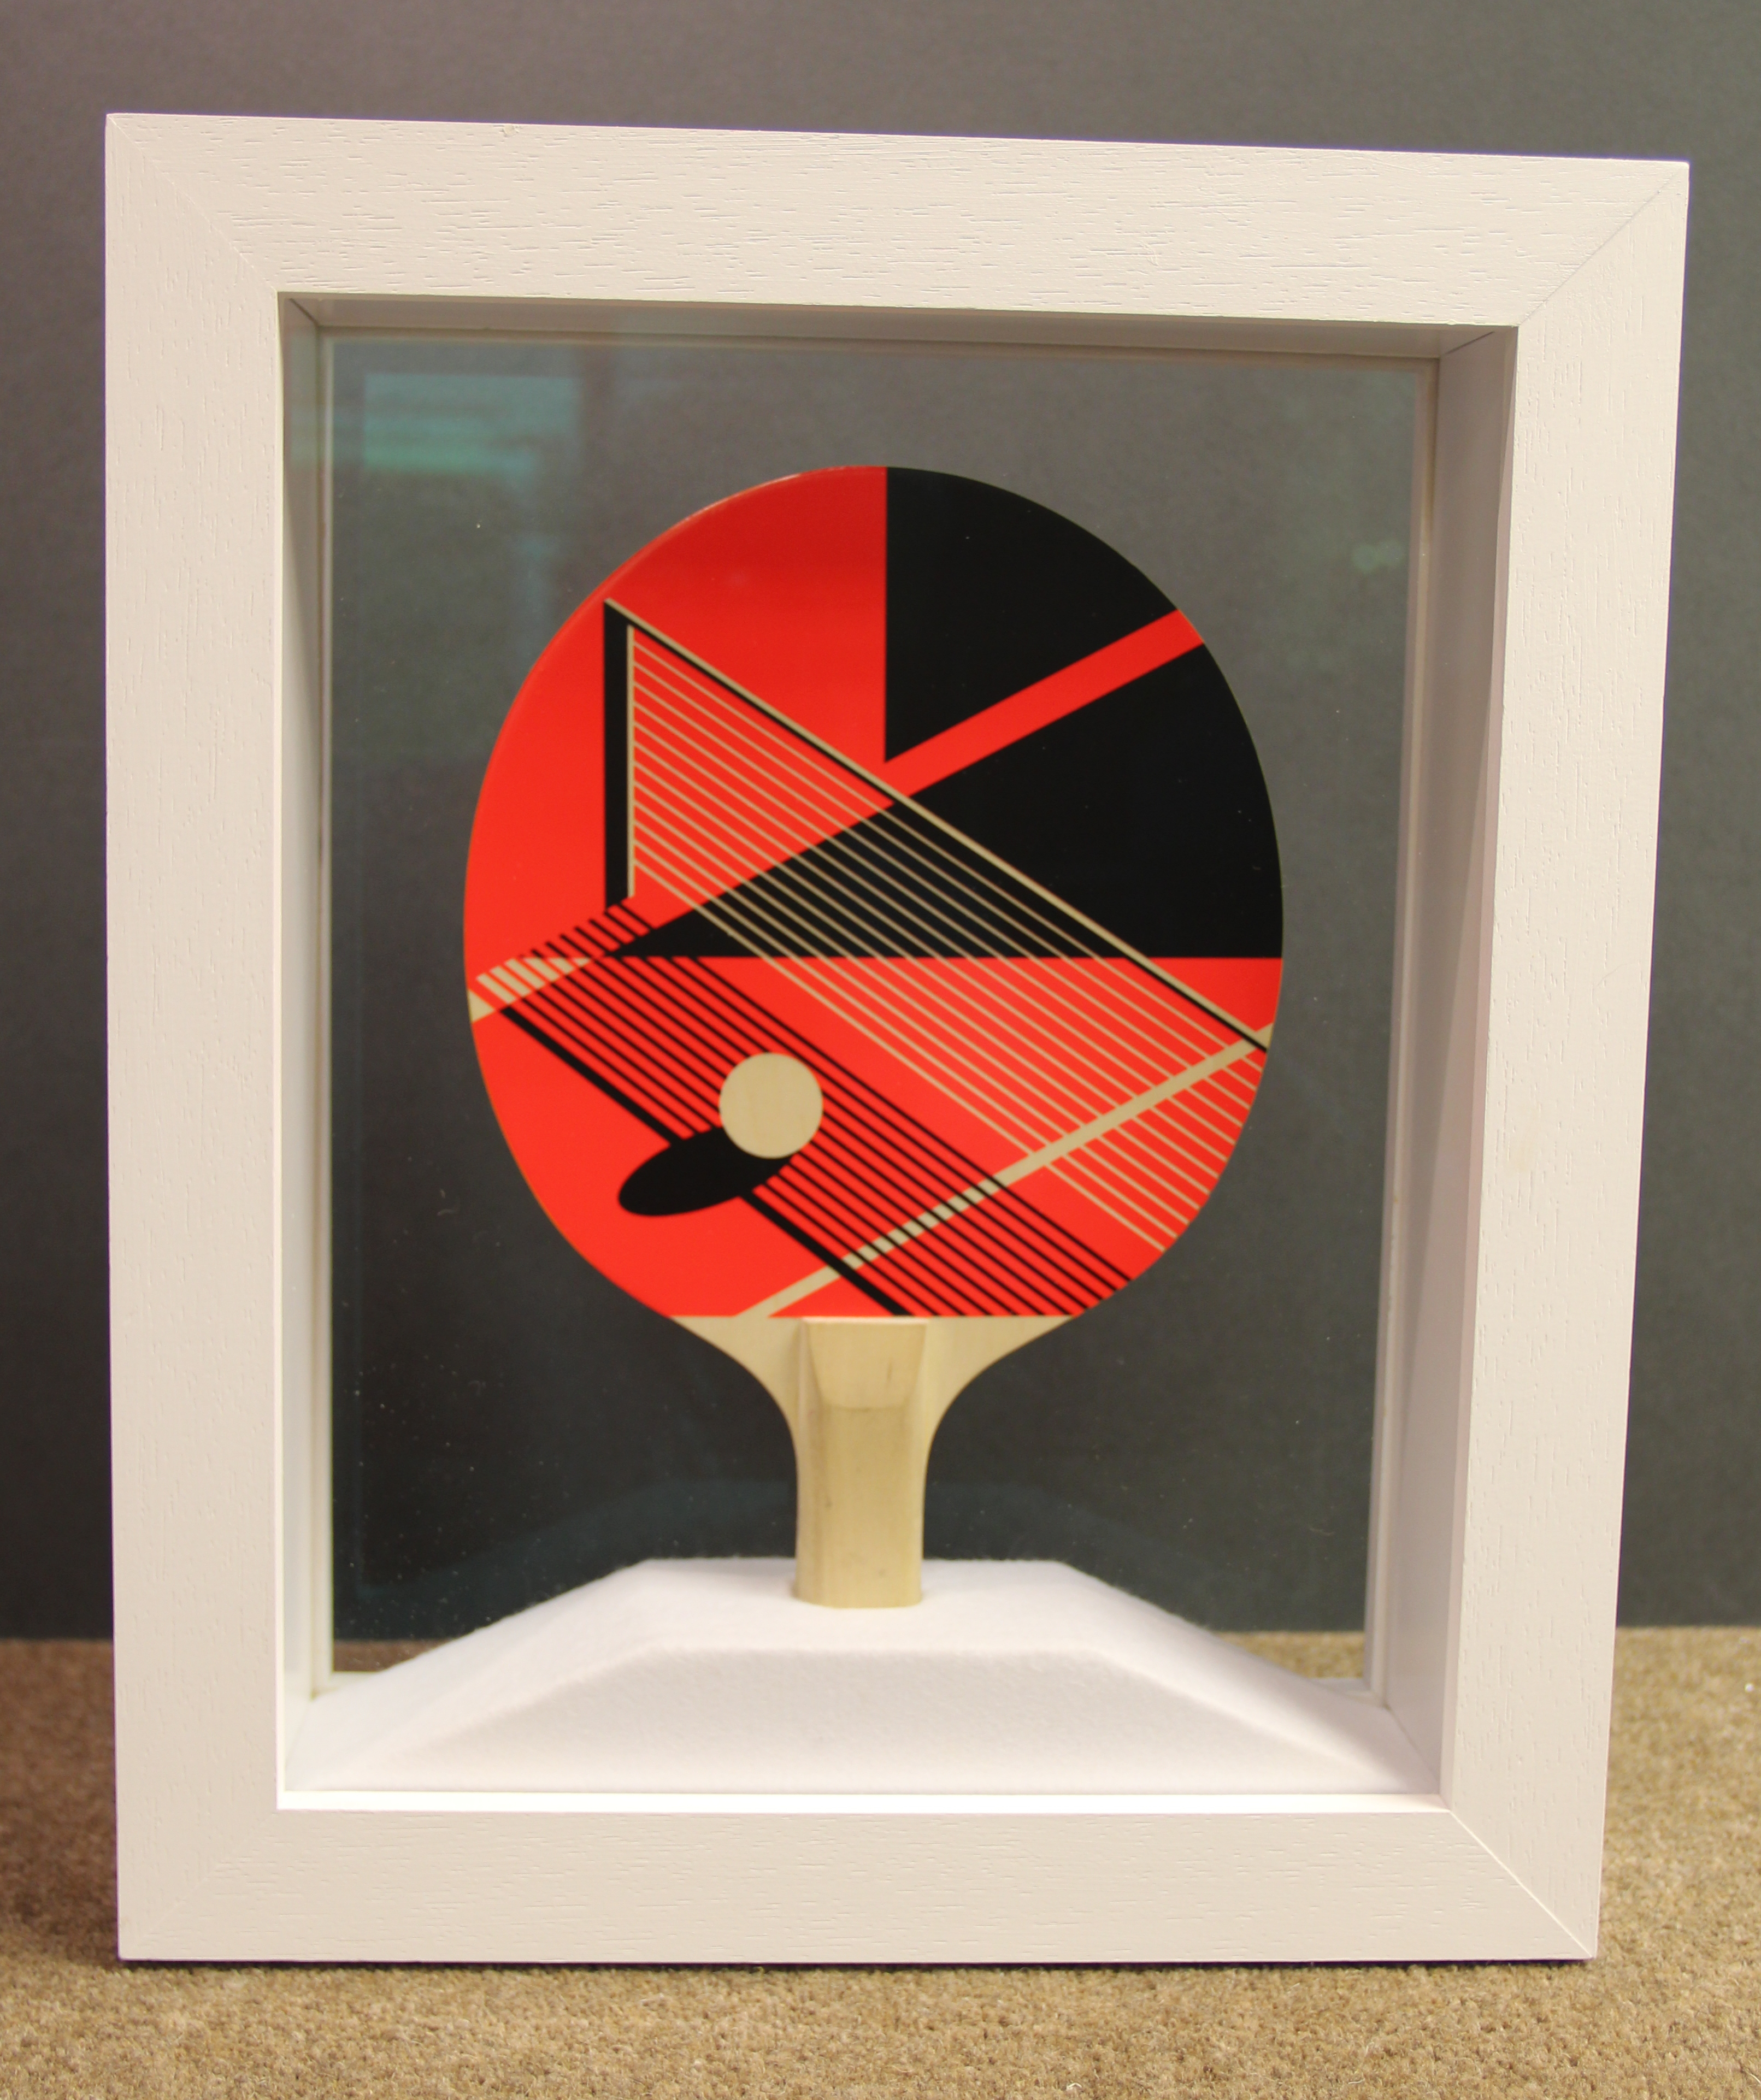 table tennis bat in double sided frame. Reverse view